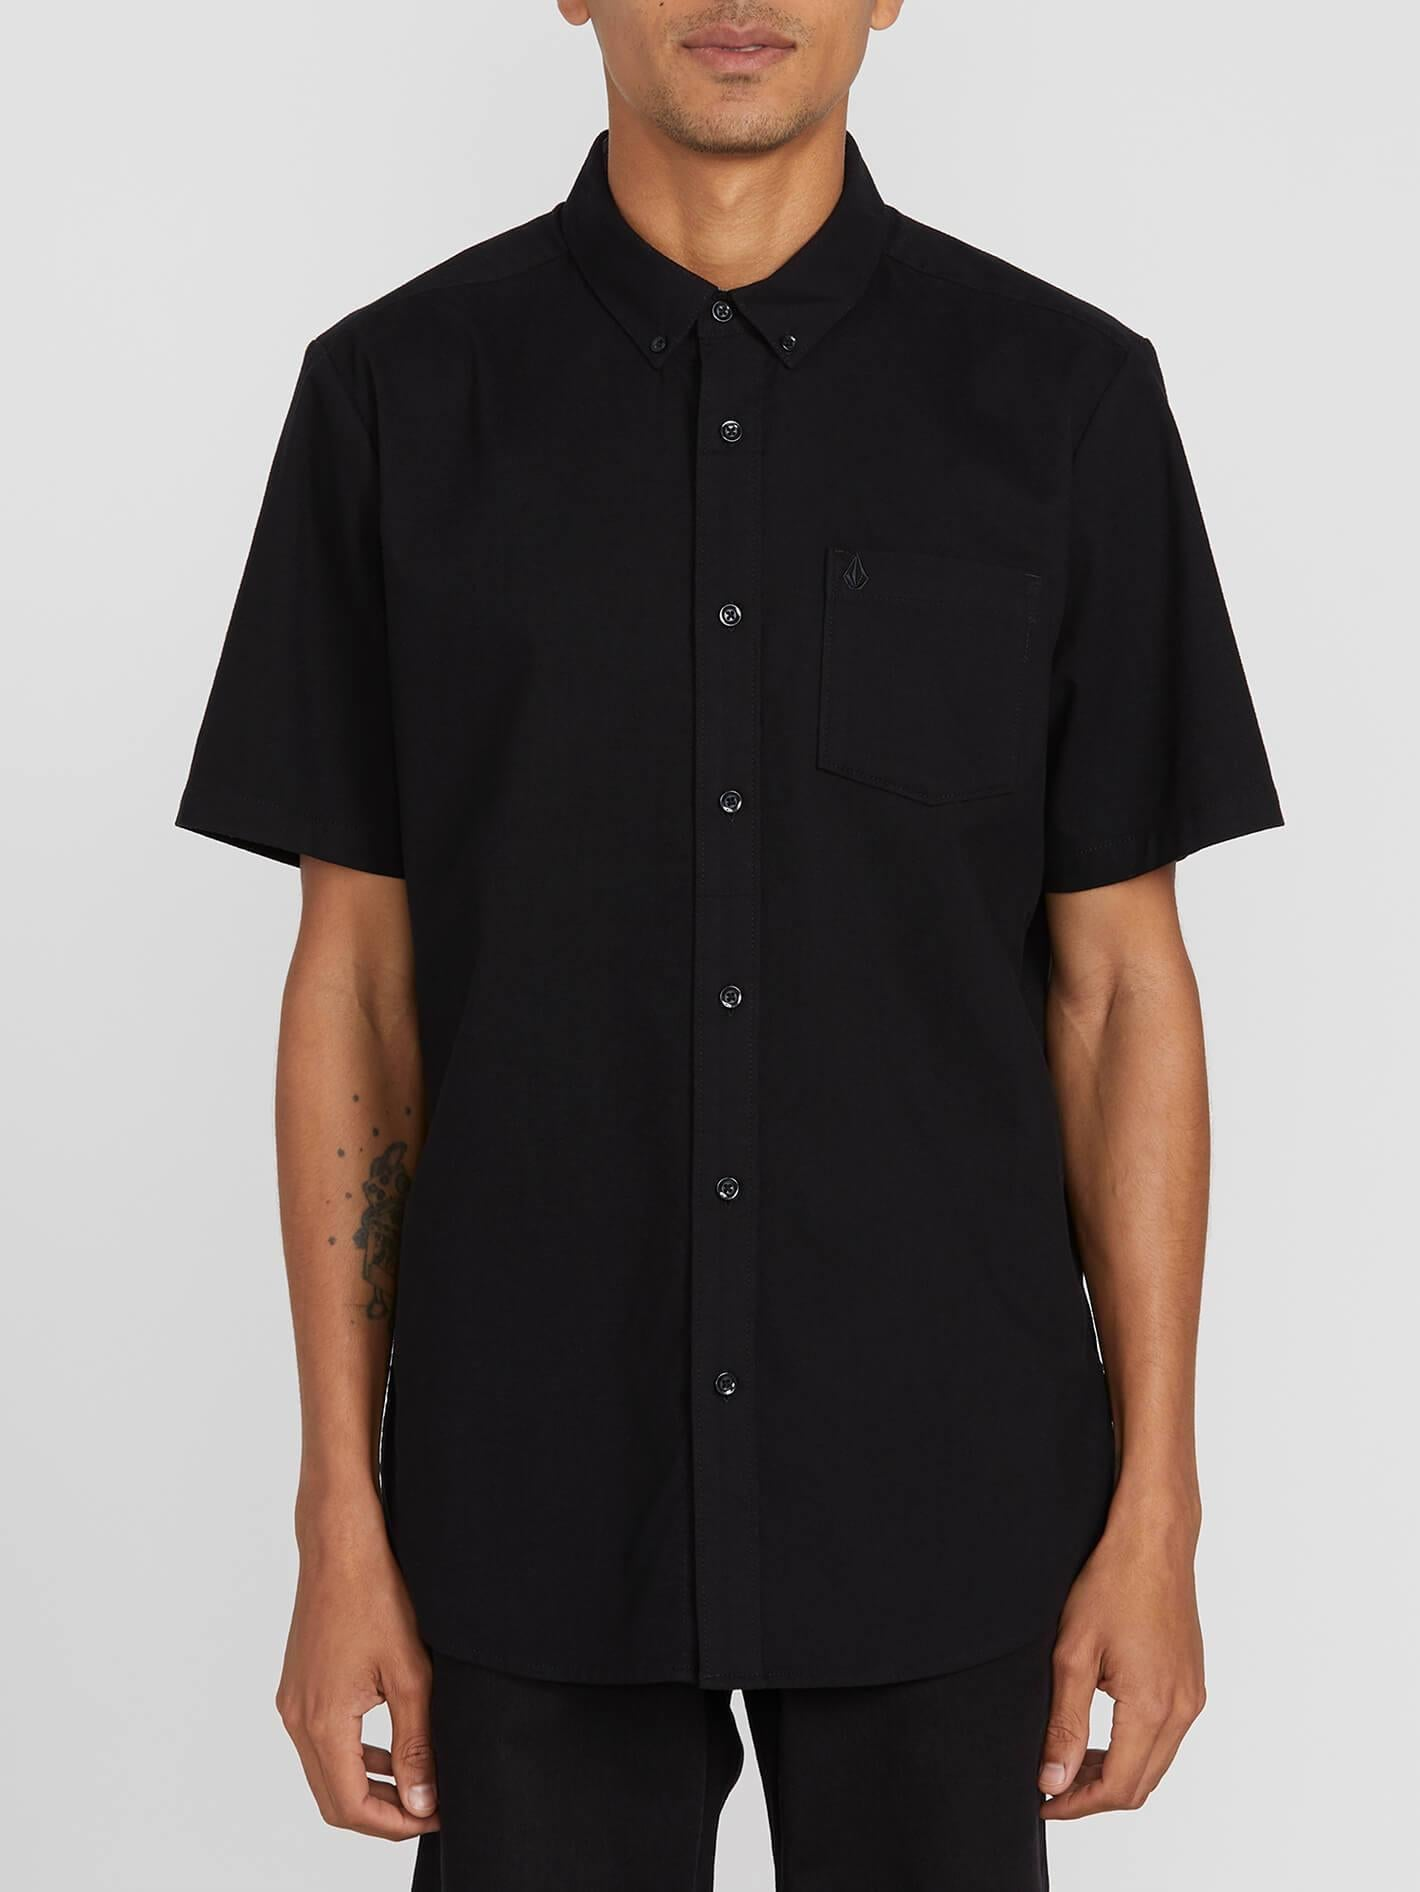 Volcom Everett Oxford Short Sleeve Button Up Shirt